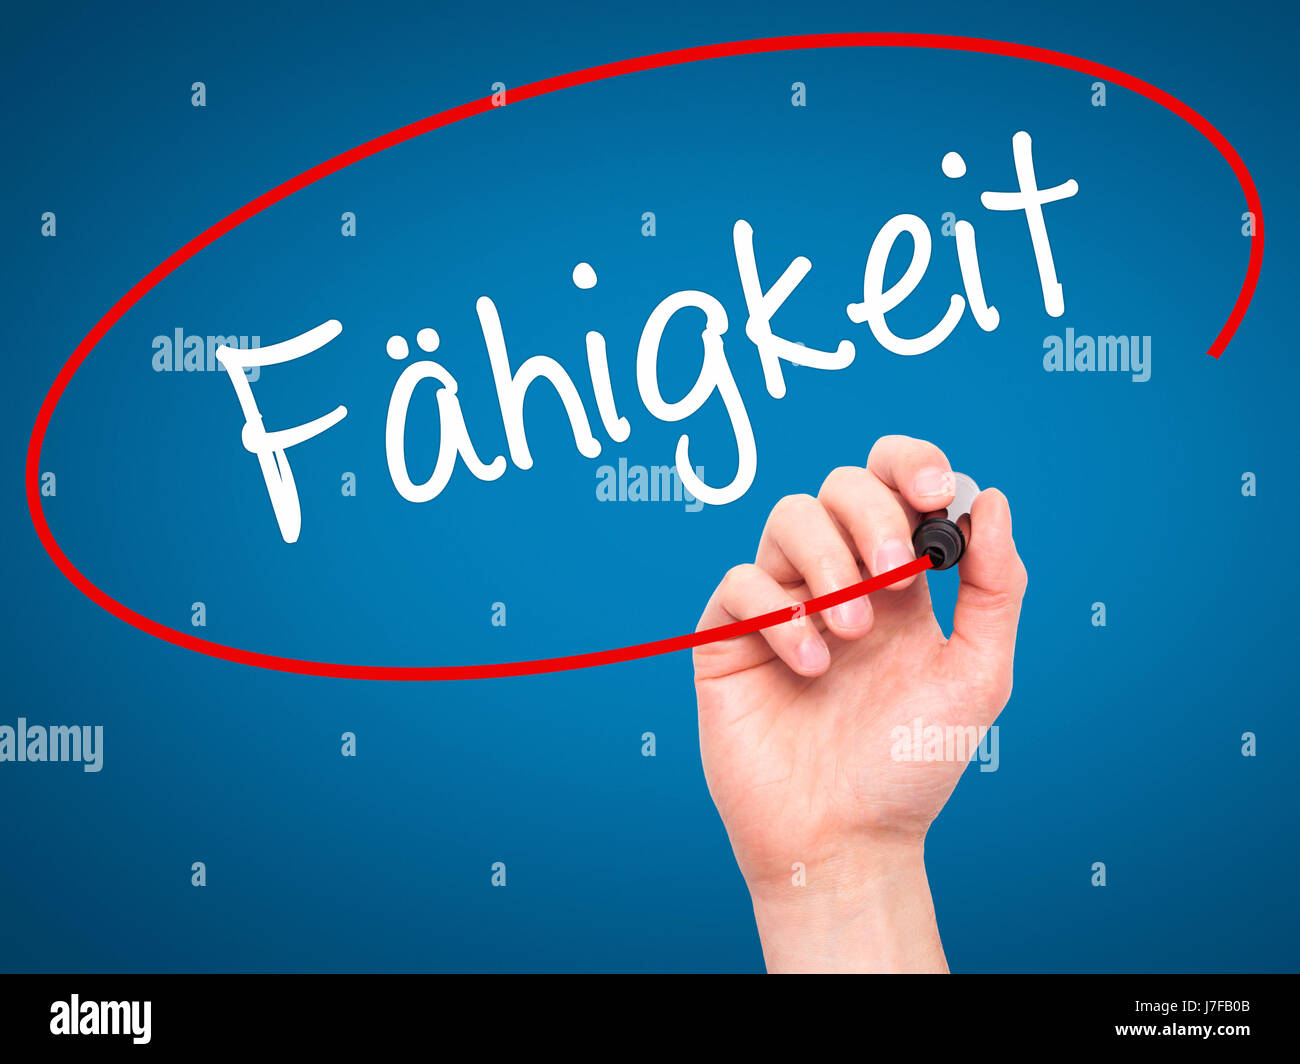 Man Hand writing Fahigkeit (Ability in German) with black marker on visual screen. Isolated on background. Business, Stock Photo